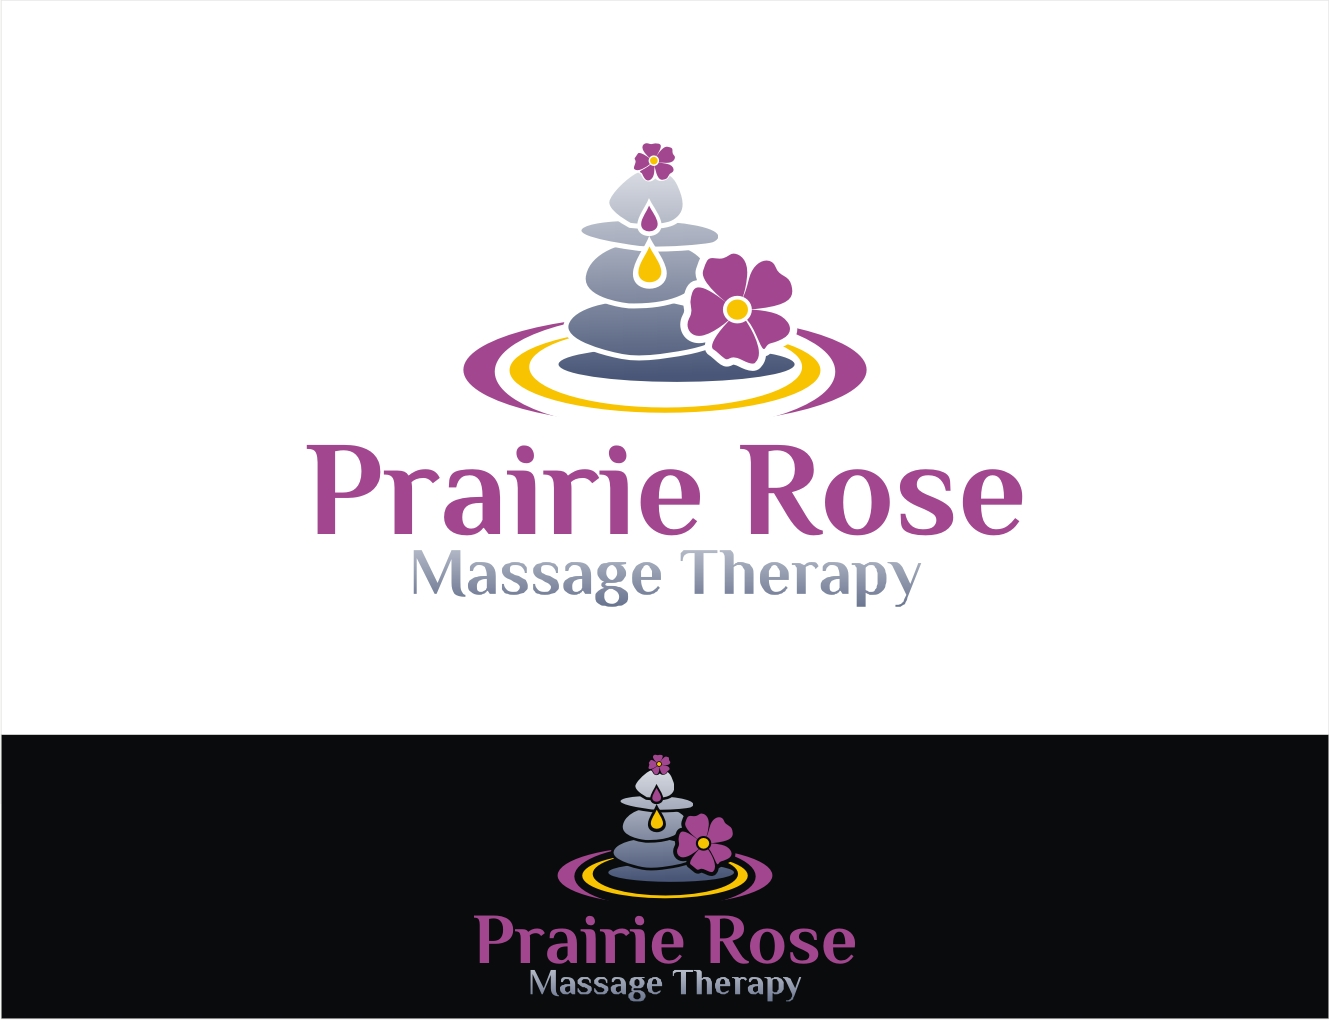 Elegant, Professional Logo Design for Prairie Rose Massage Therapy ...